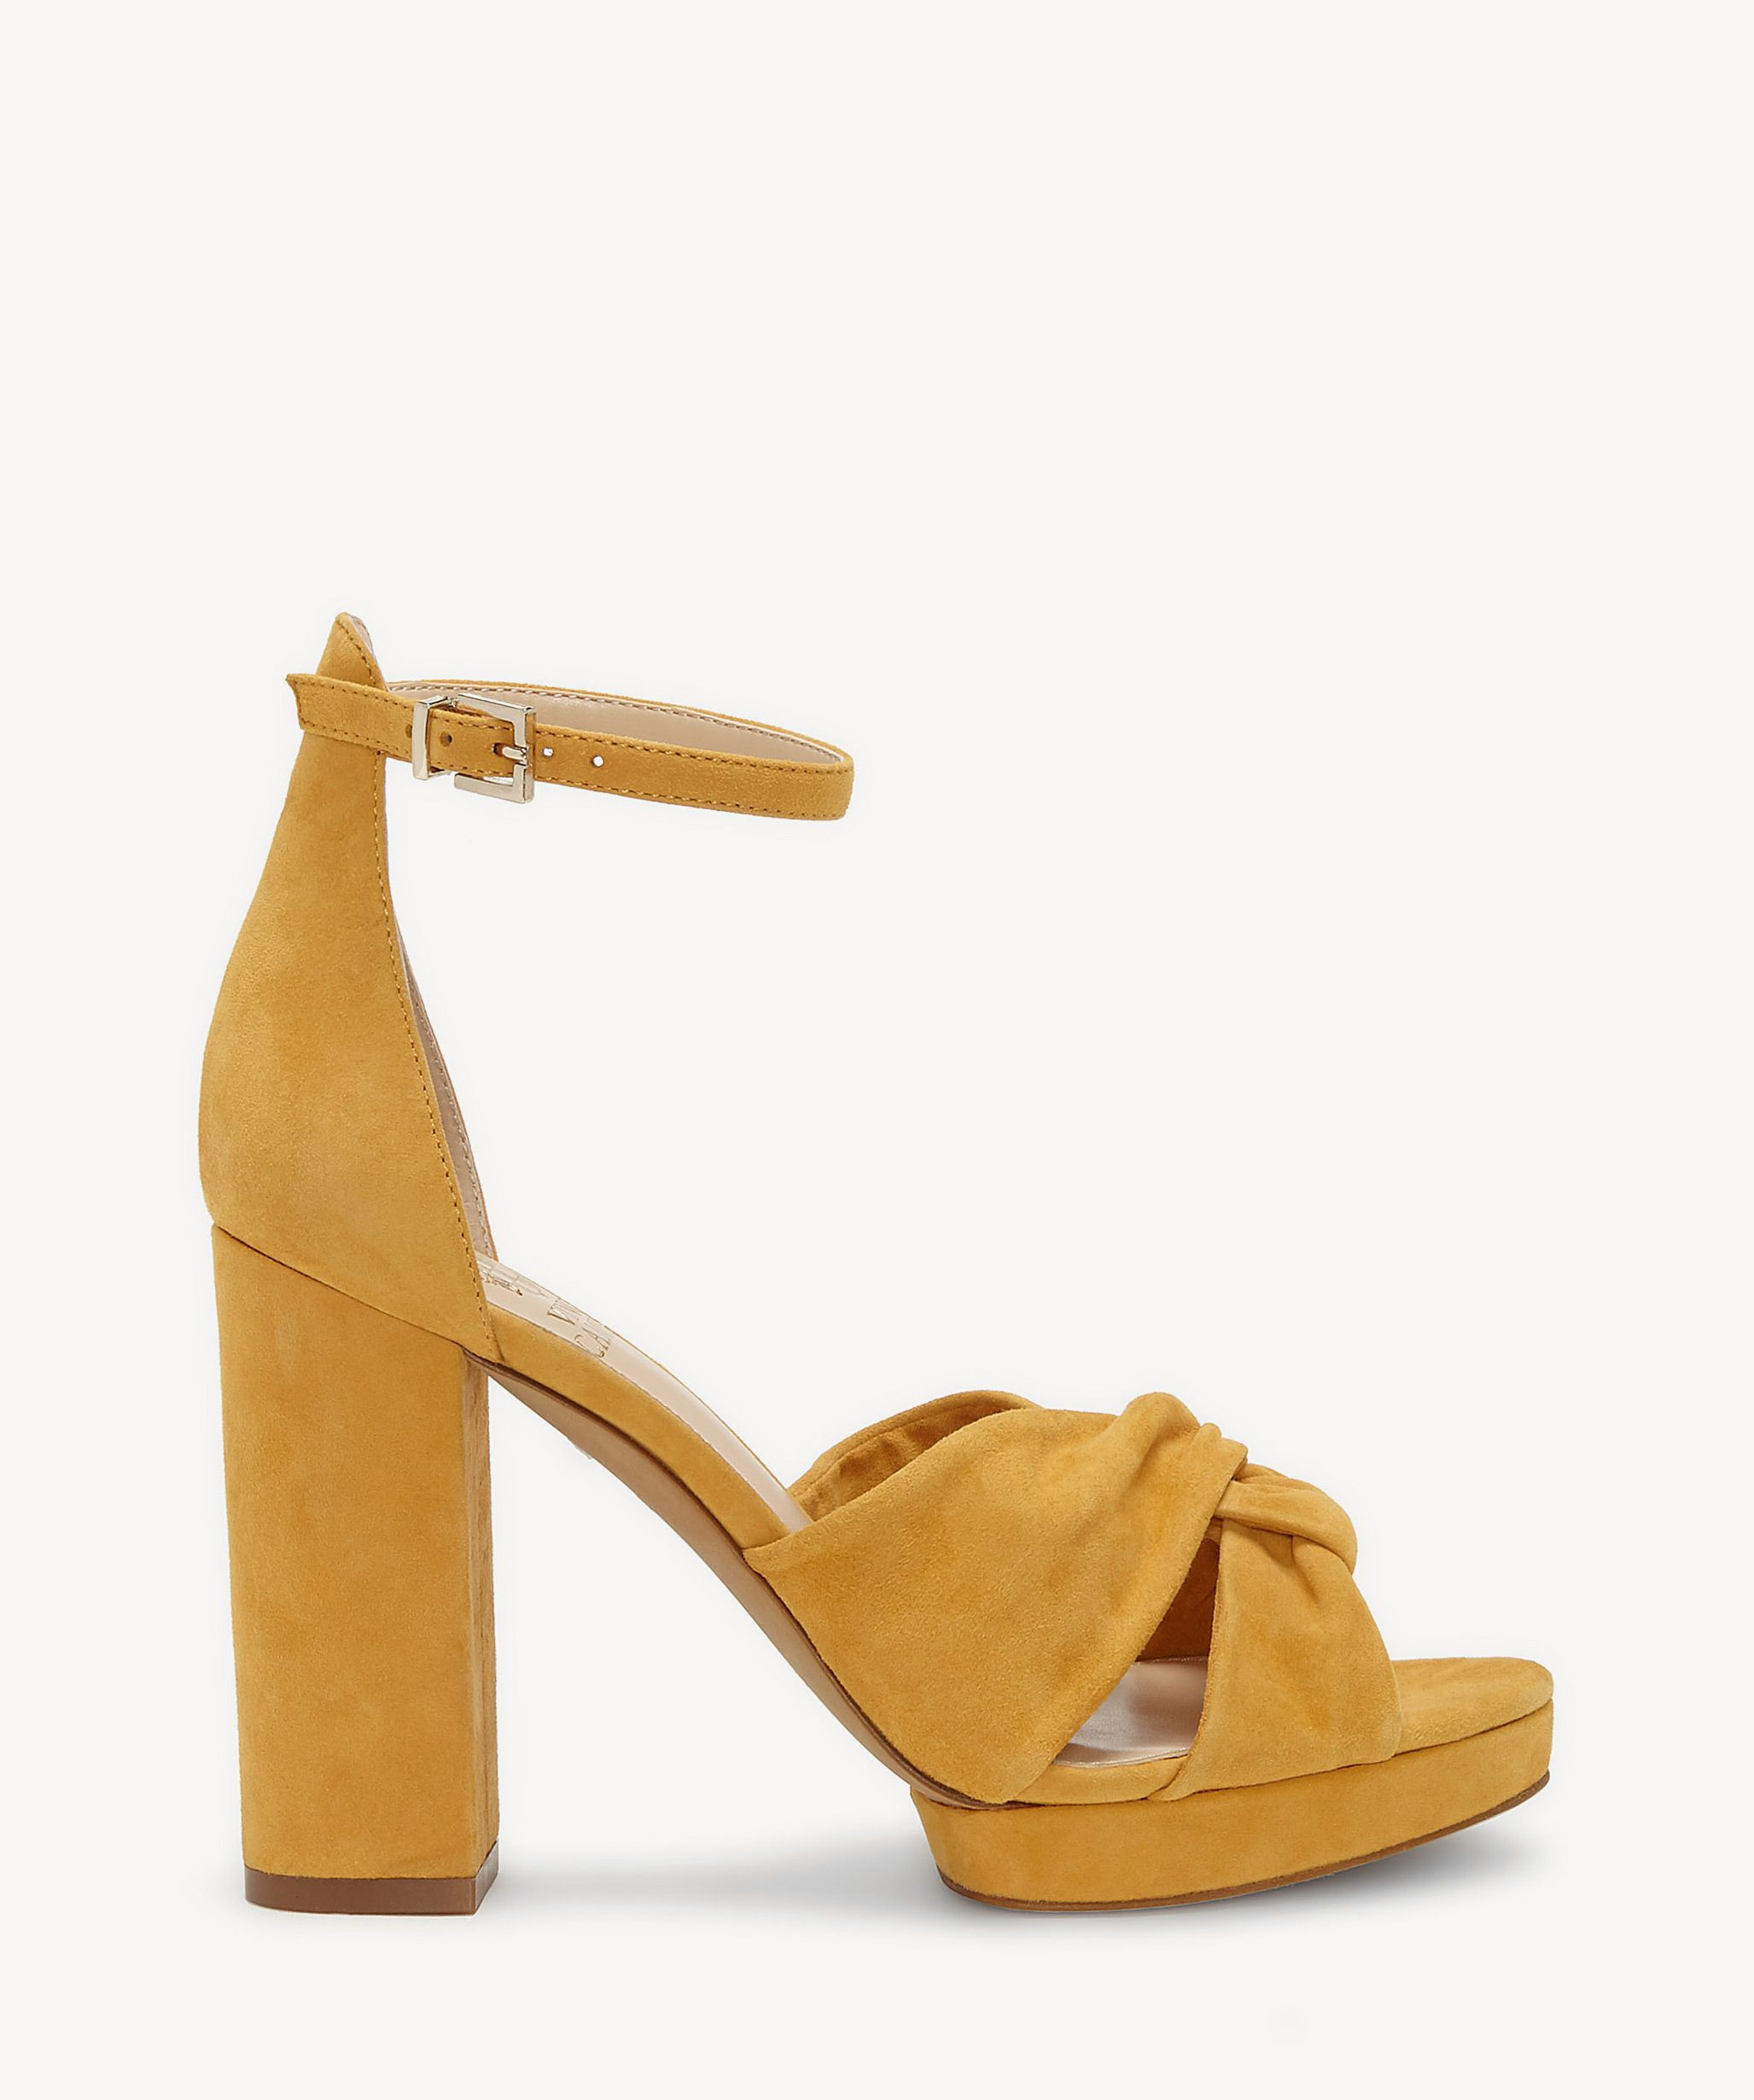 7b07c3e5ecf Vince Camuto Corlesta Knotted Sandals Mustard Yellow